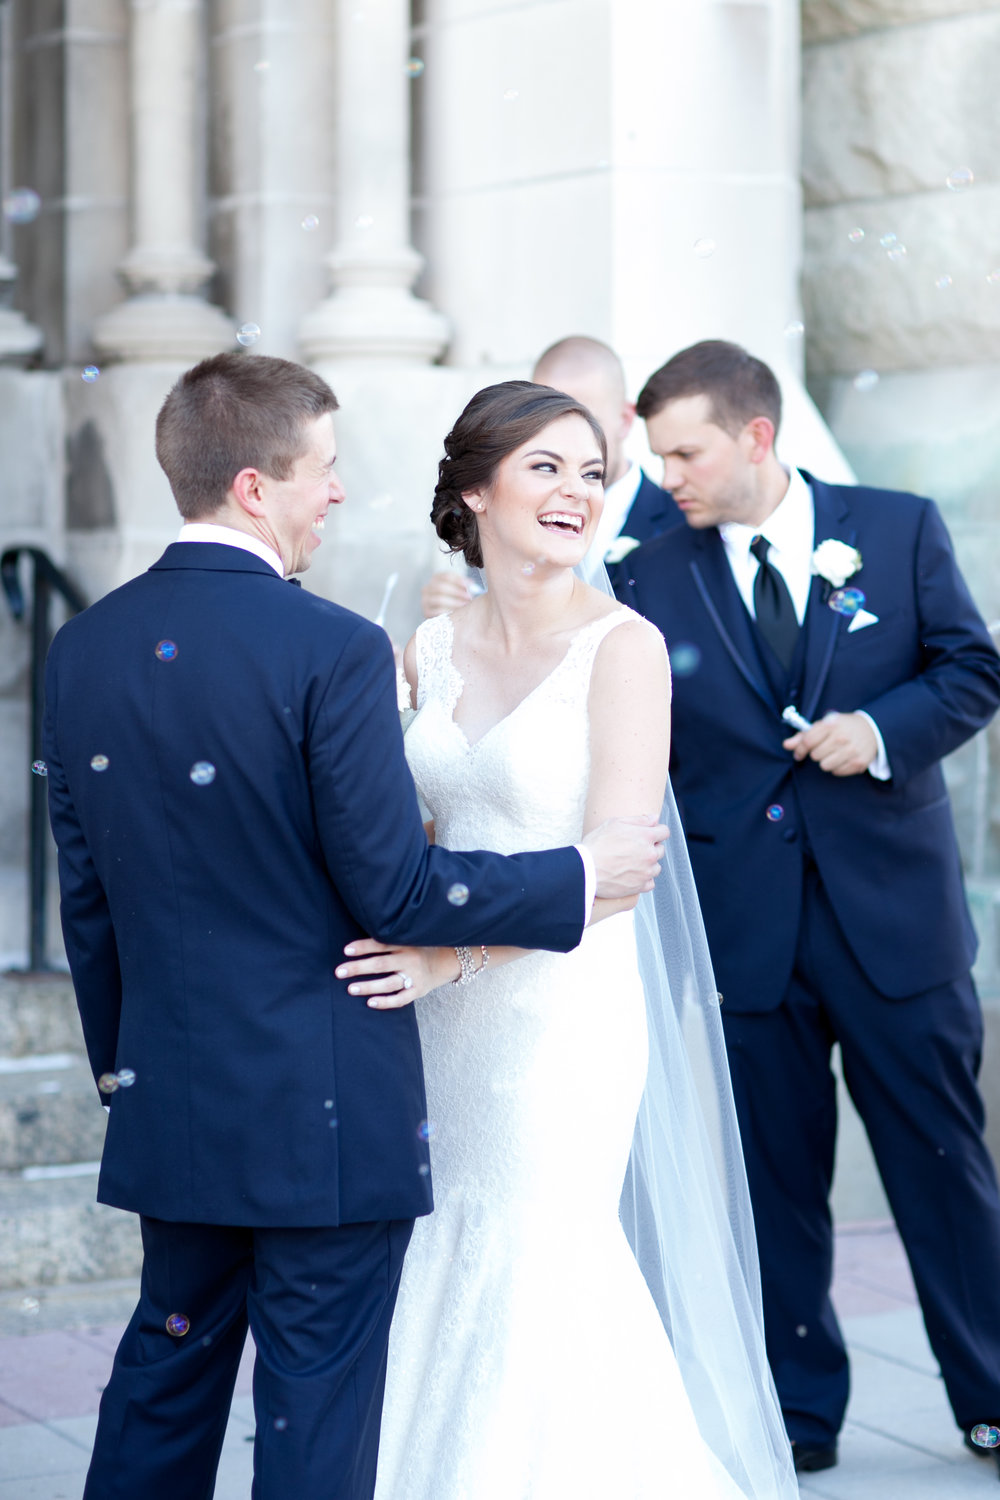 LisaDiederichPhotography_caitlin&caseywedding_blog-36.jpg